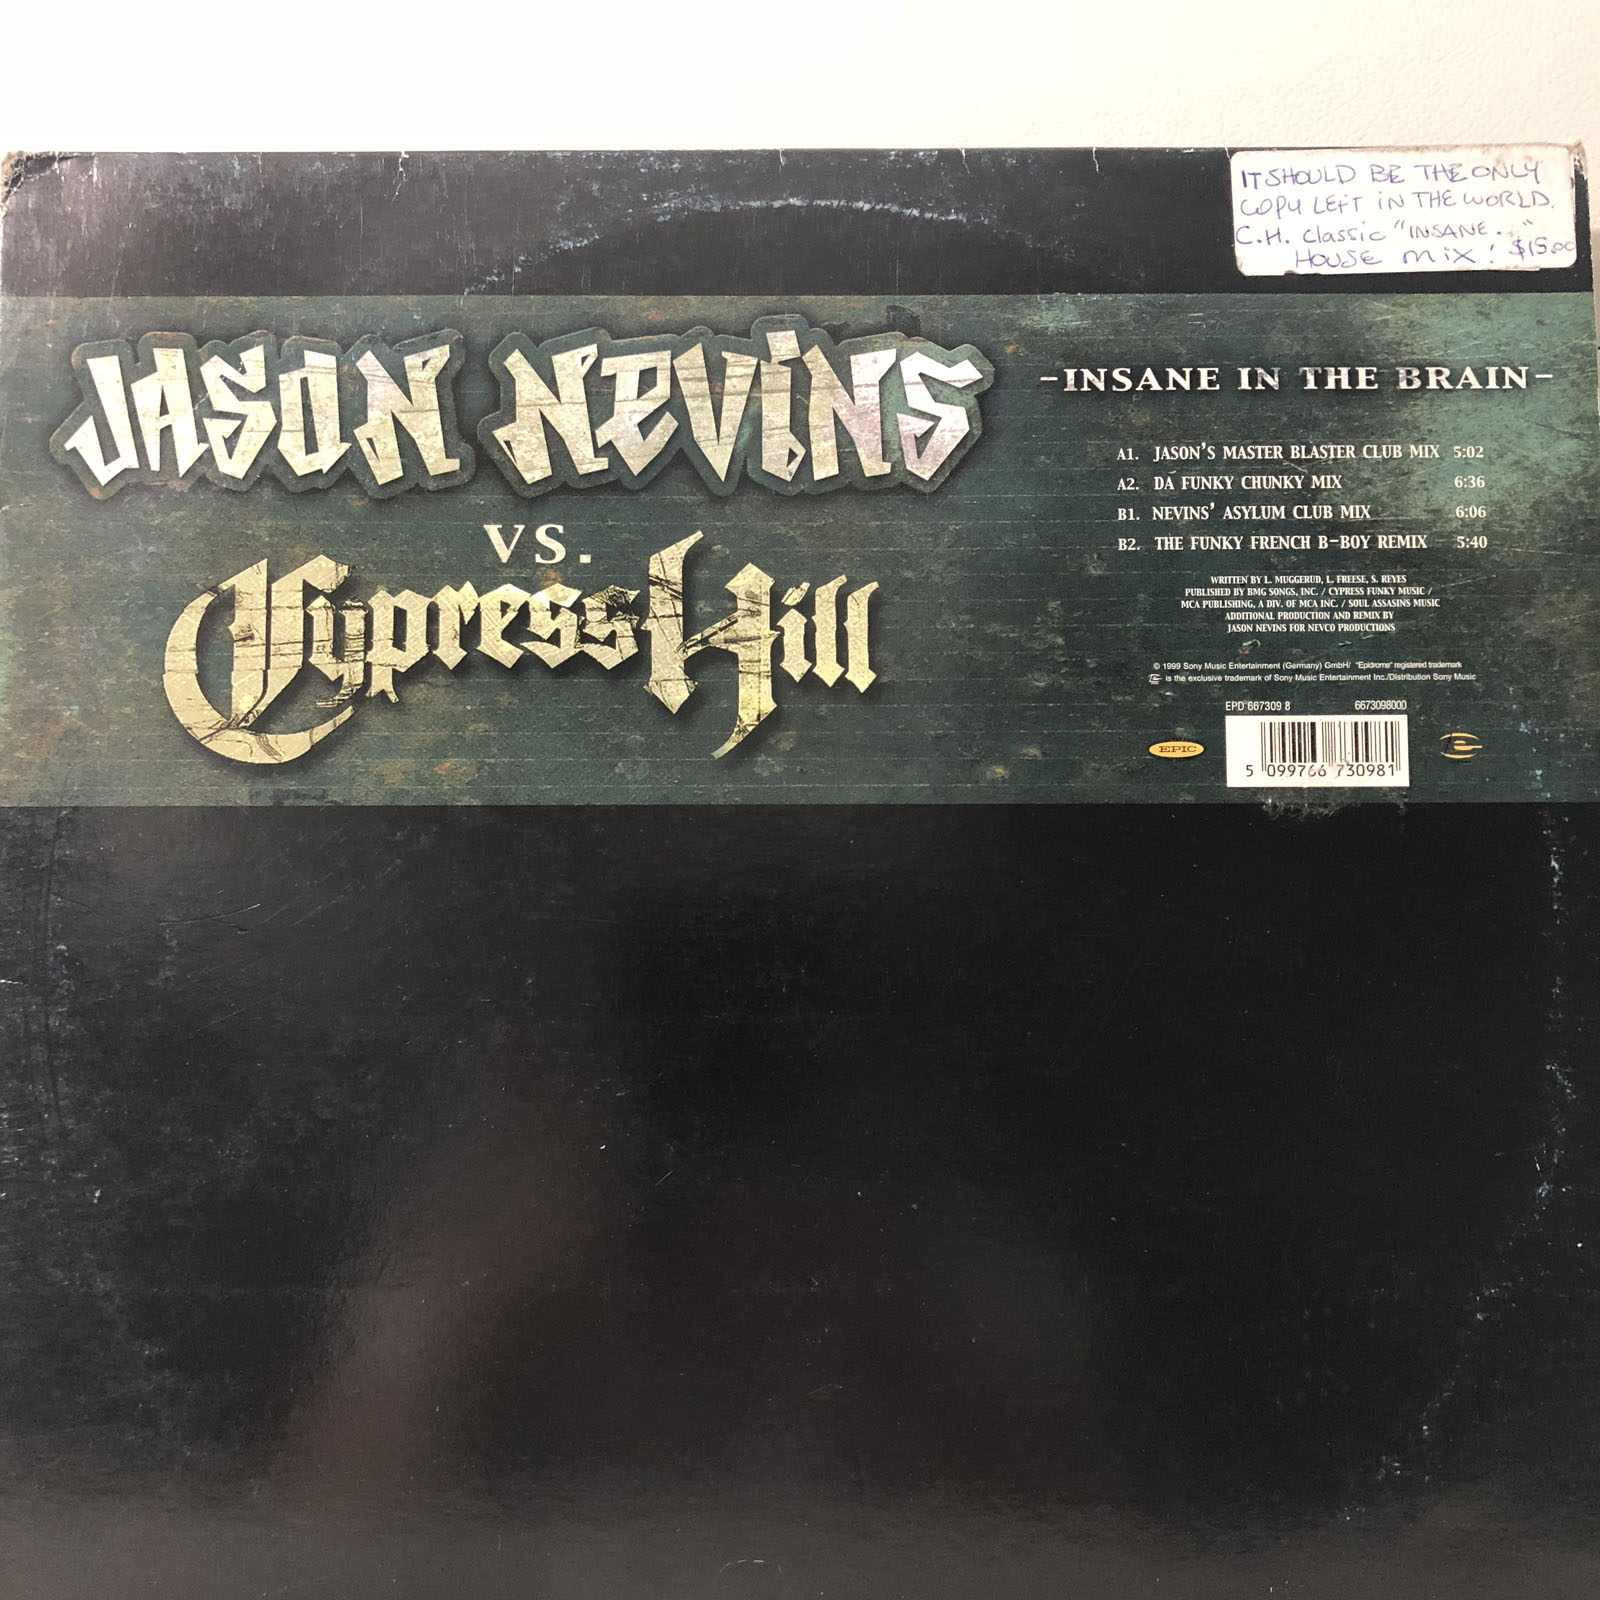 Details about JASON NEVINS vs CYPRESS HILL - INSANE IN THE BRAIN (REMIXES)  (12